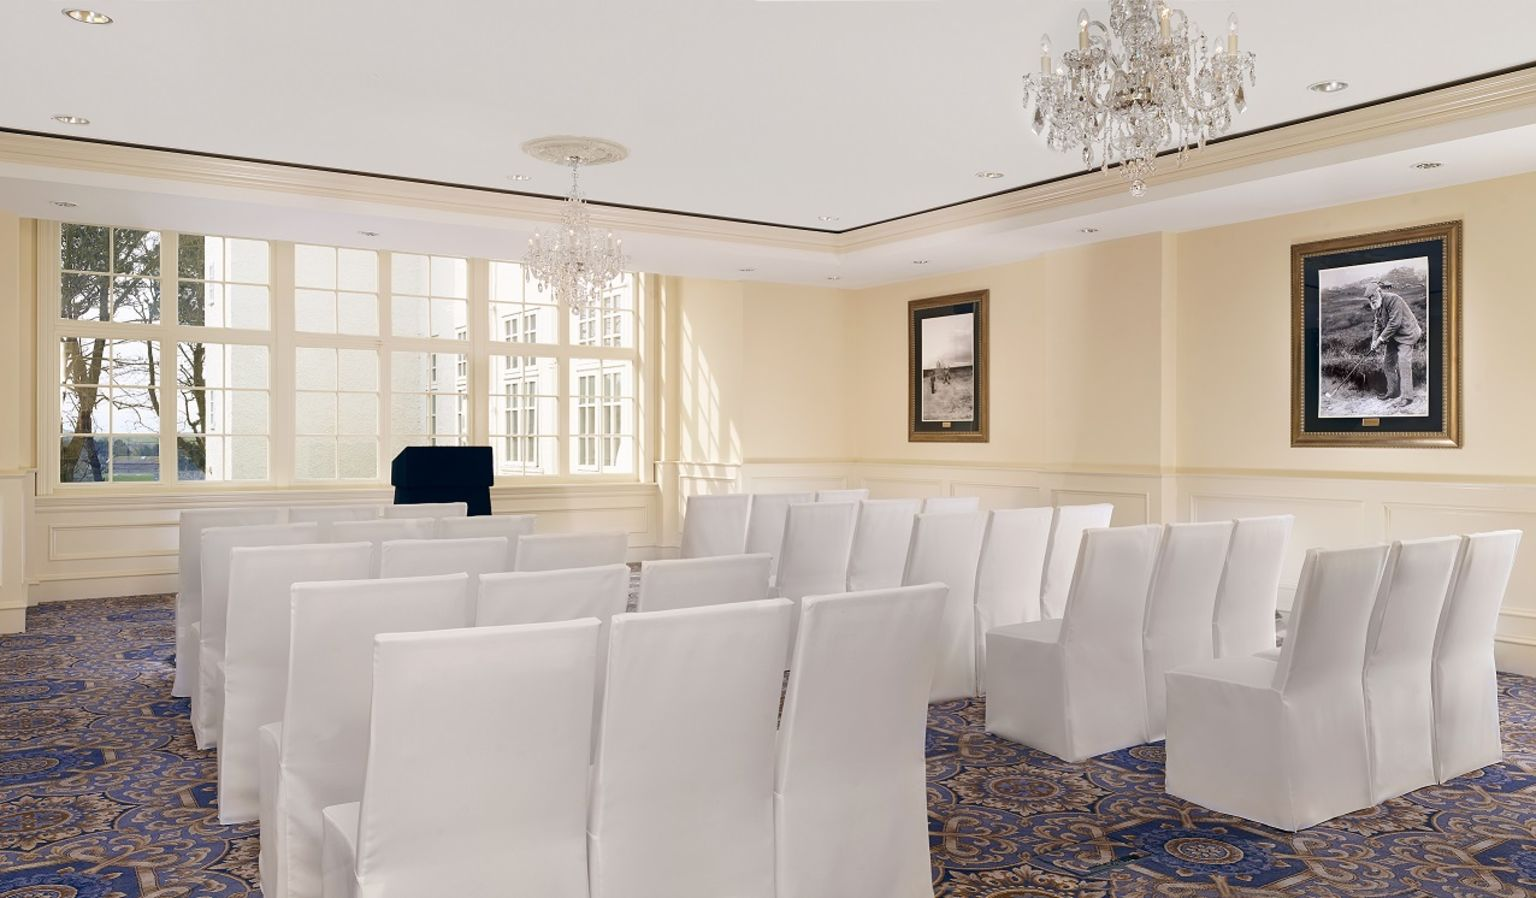 Meeting Room with Chairs Facing Podium